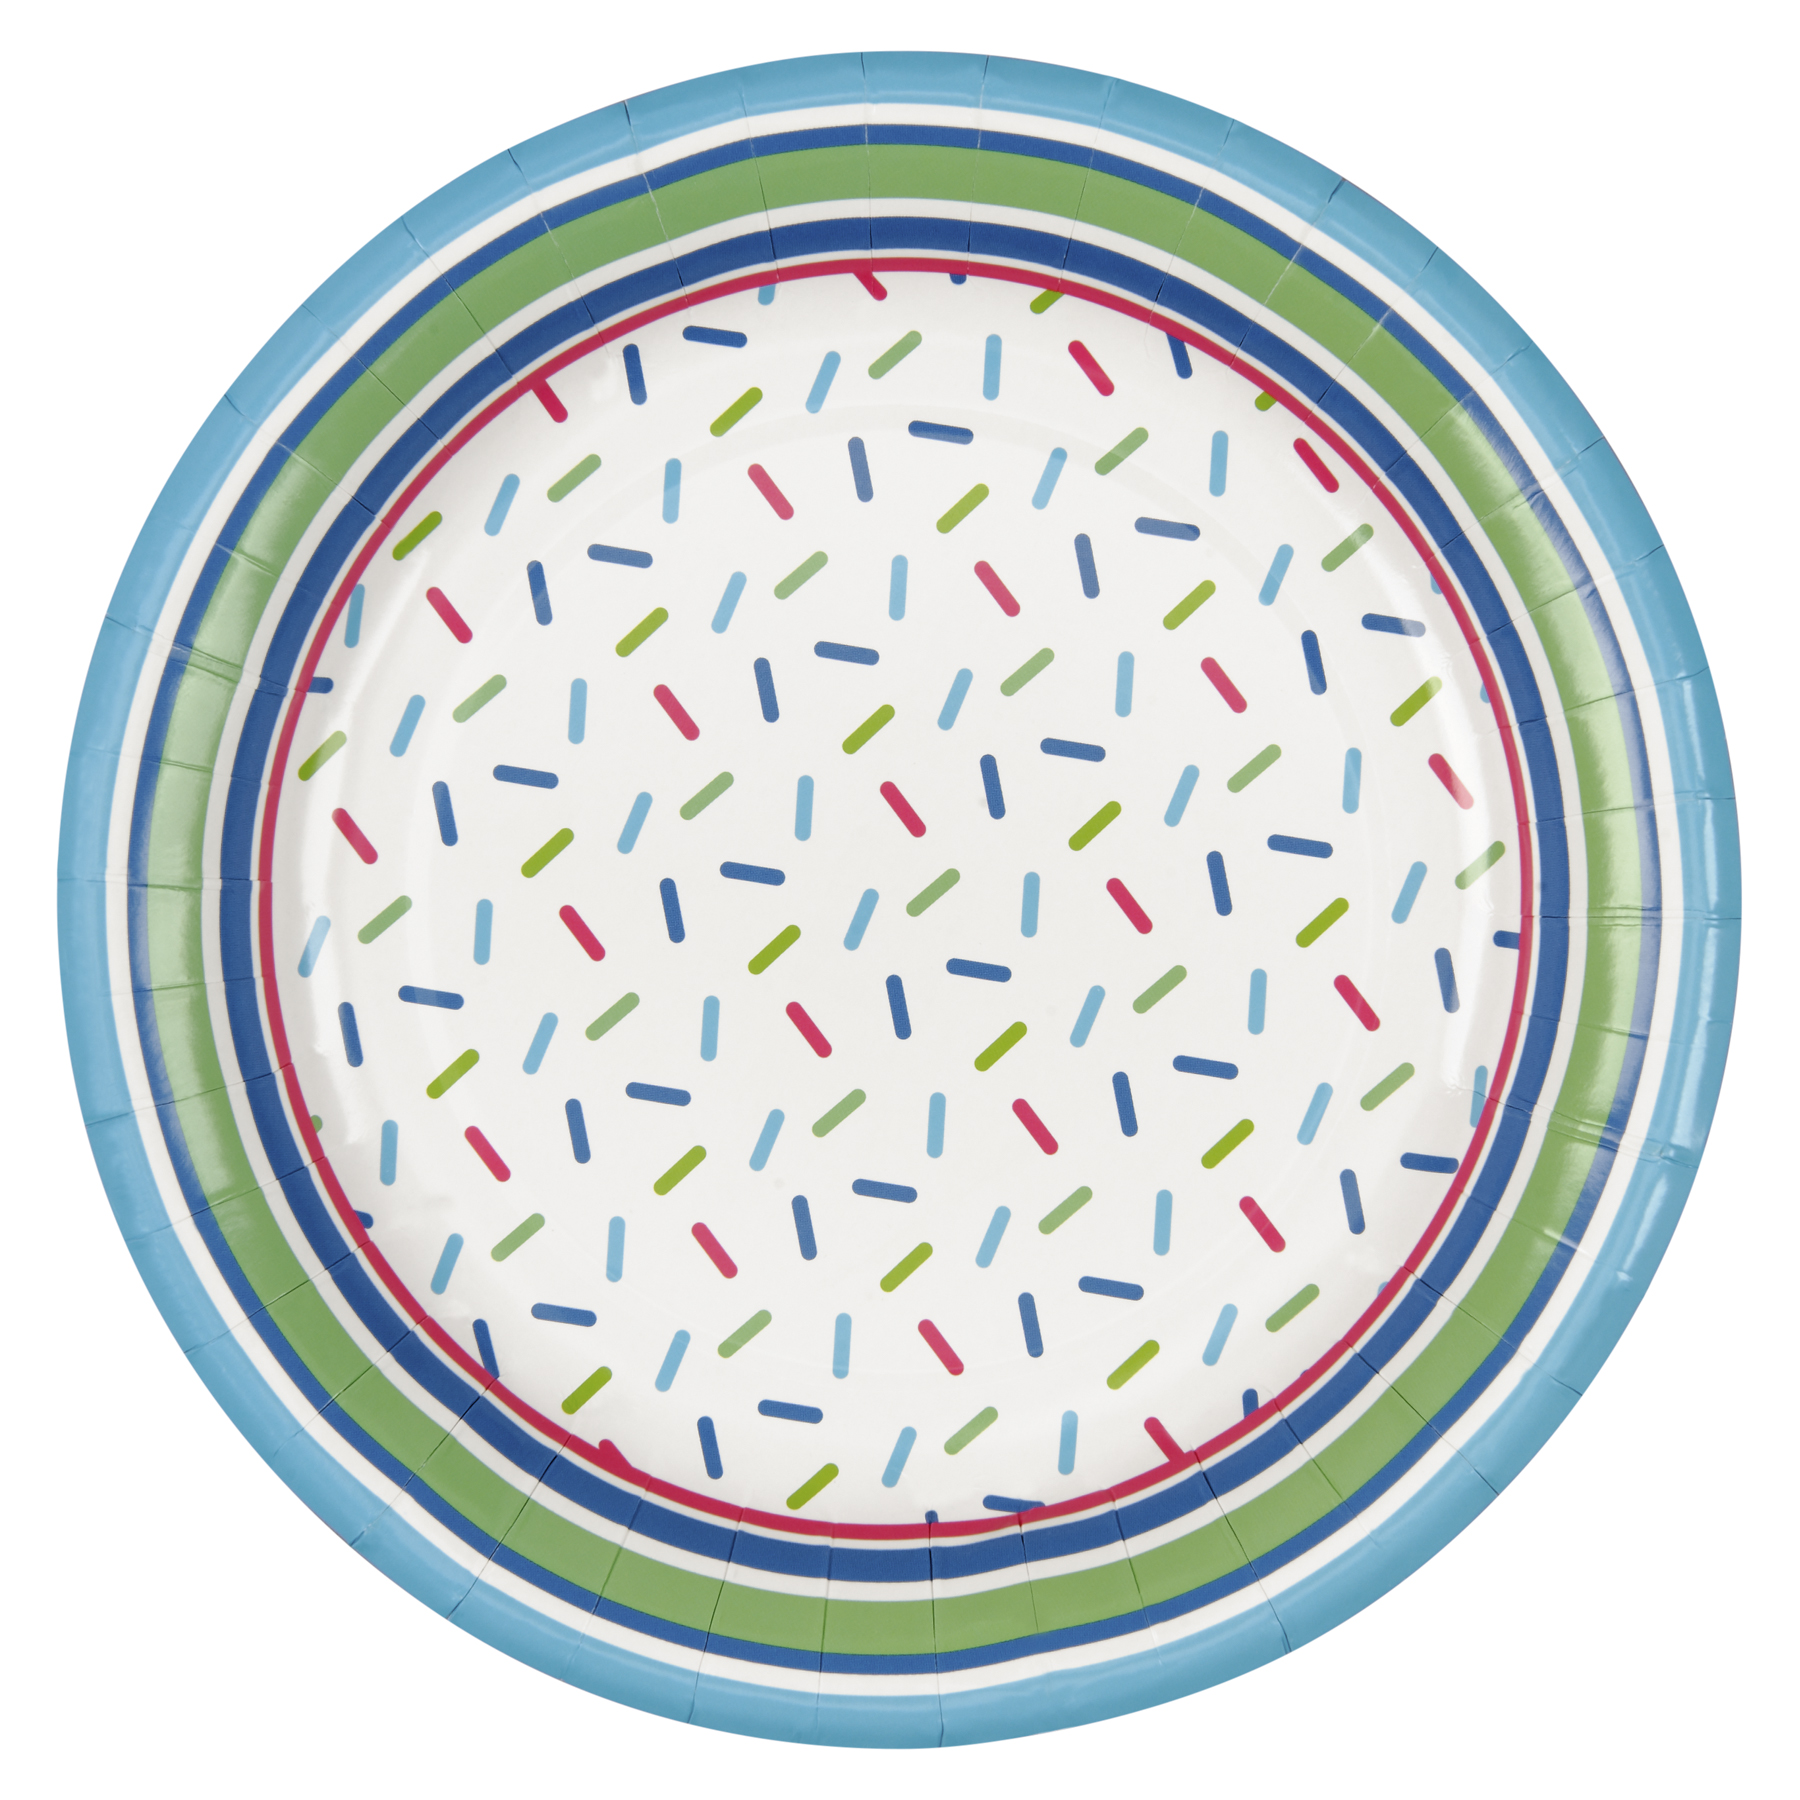 Green Confetti Round Paper Plates By Celebrate It  sc 1 st  Michaels Stores & Buy the Green Confetti Round Paper Plates By Celebrate It™ at Michaels